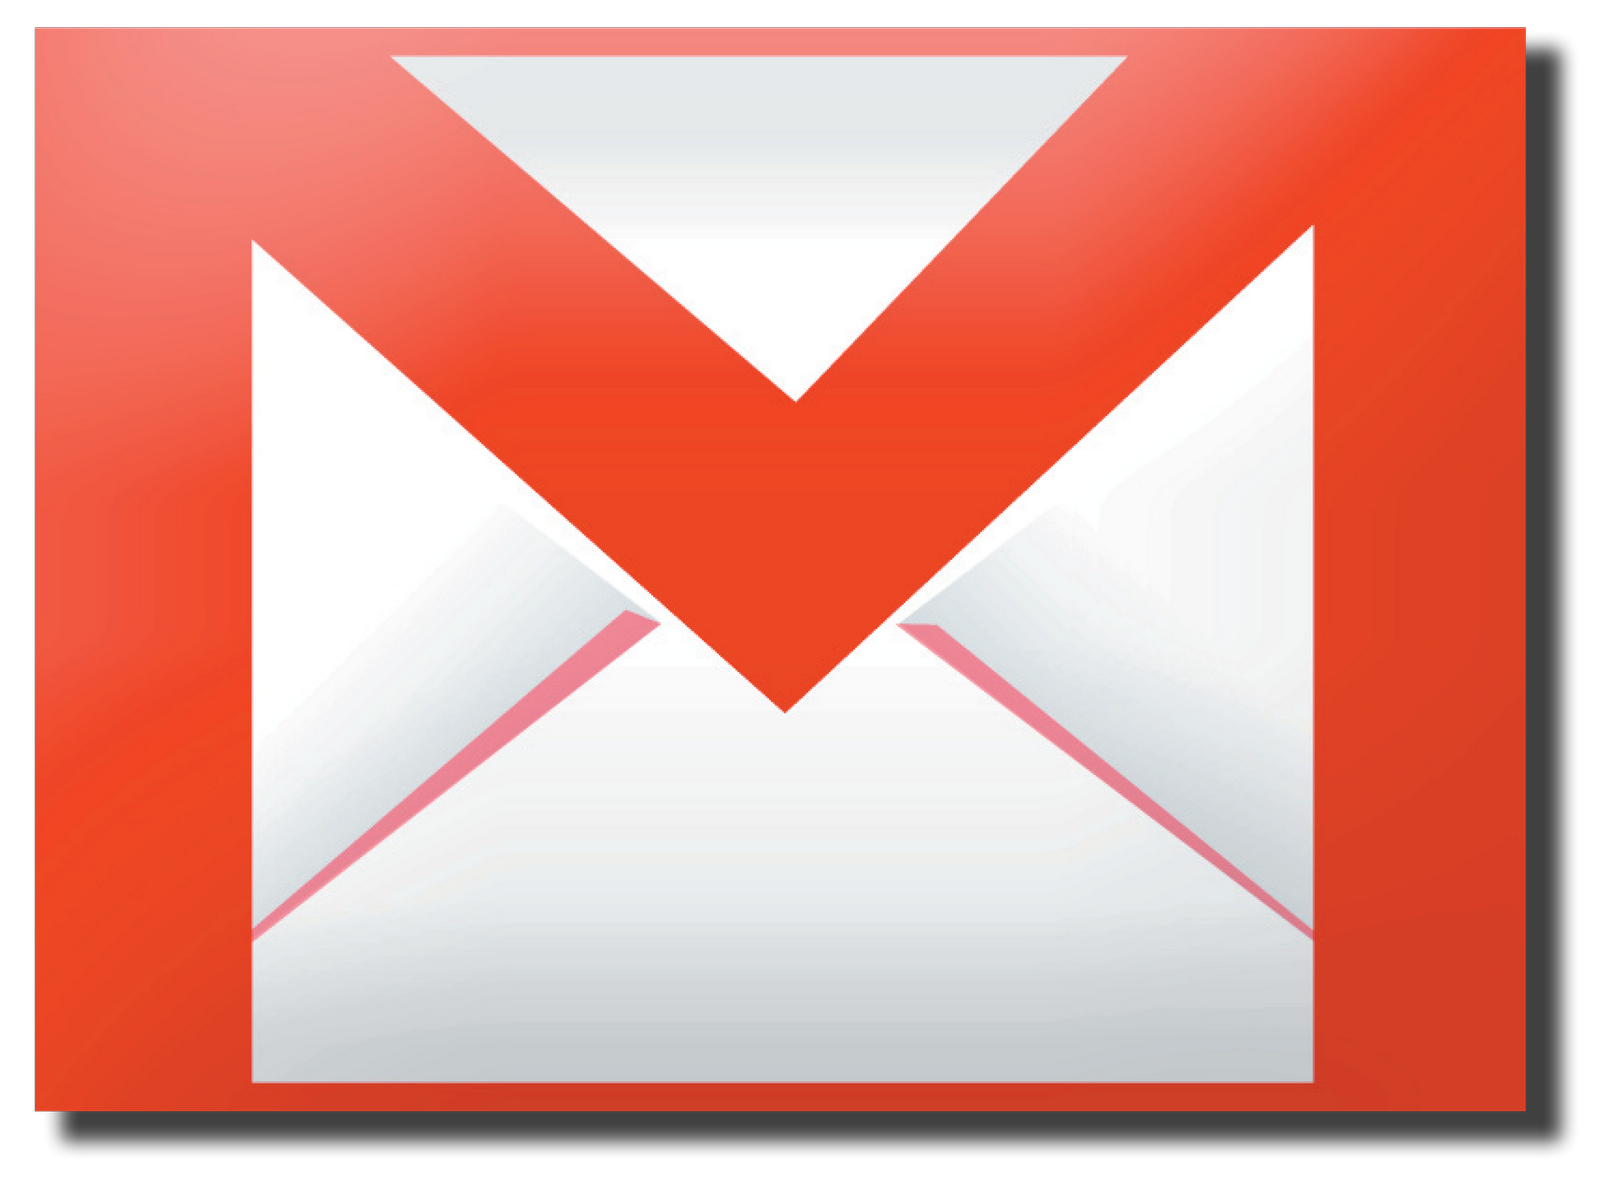 Mail clipart gmail. Logo png images free